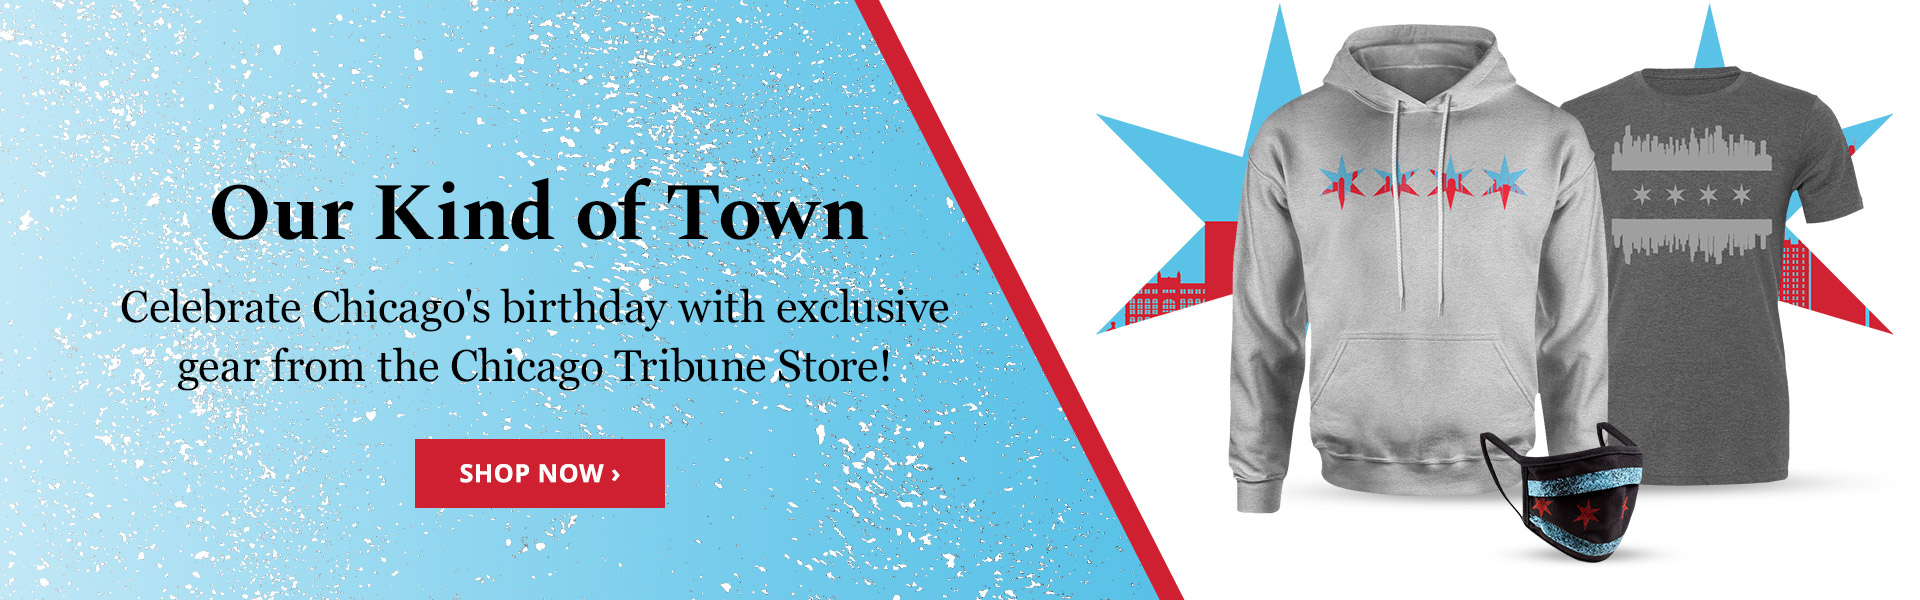 Our Kind Of Town. Celebrate Chicago's birthday with exclusive gear from the Chicago Tribune Store!